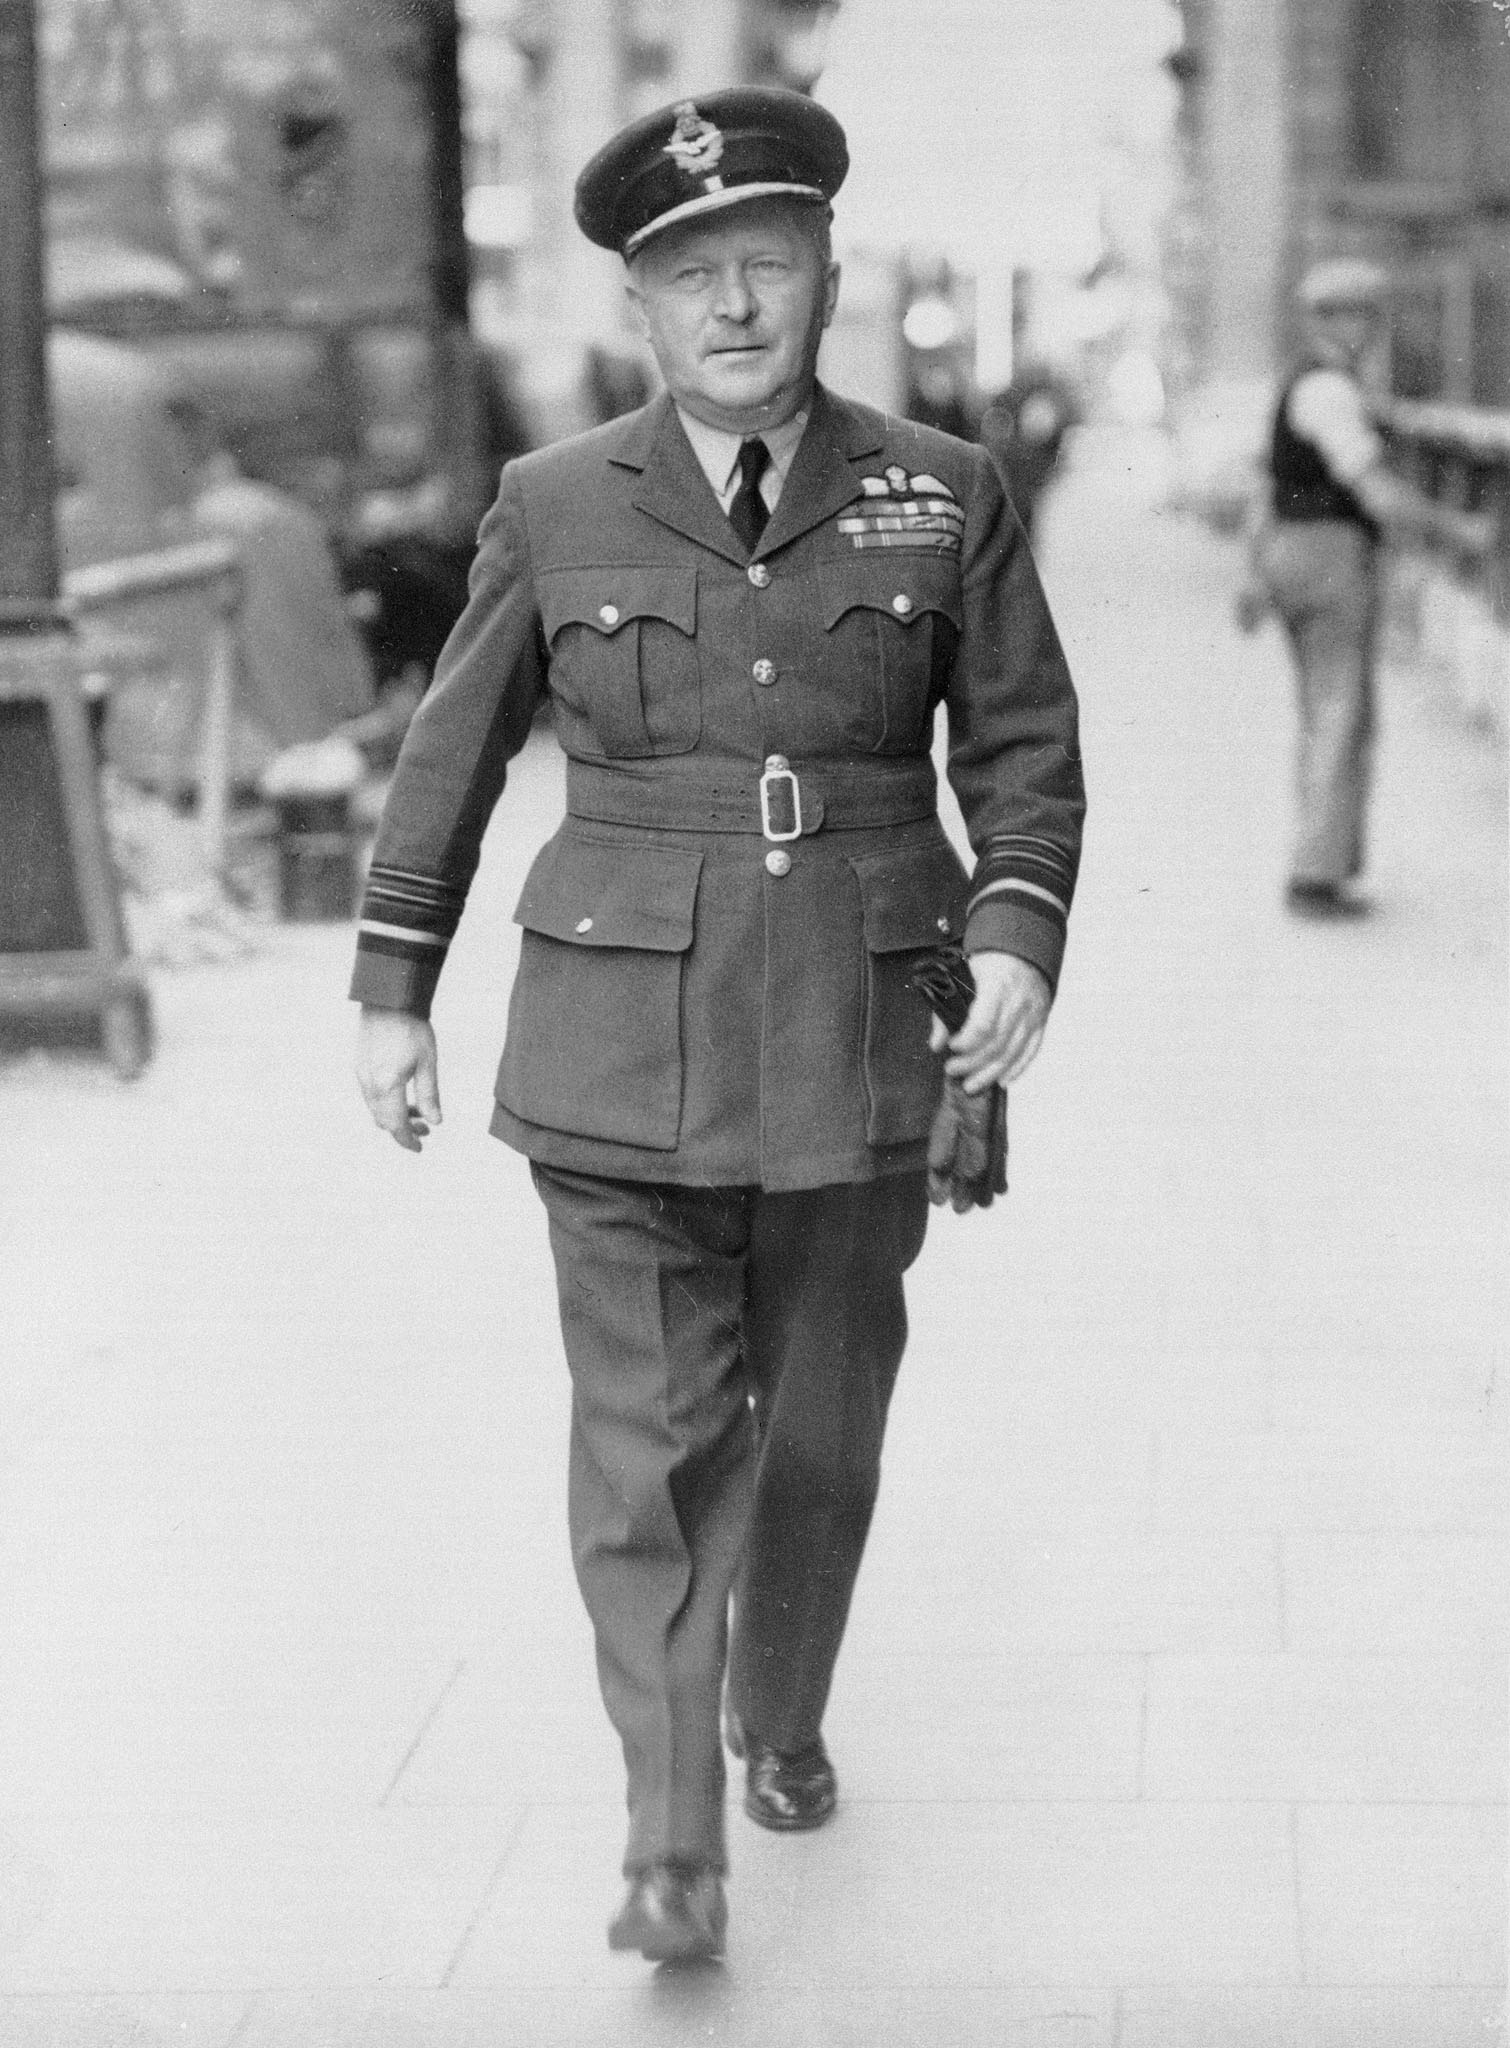 Air Marshal William Avery Bishop strides purposefully down an unknown street on December 4, 1940. PHOTO: DND Archives, PL-999